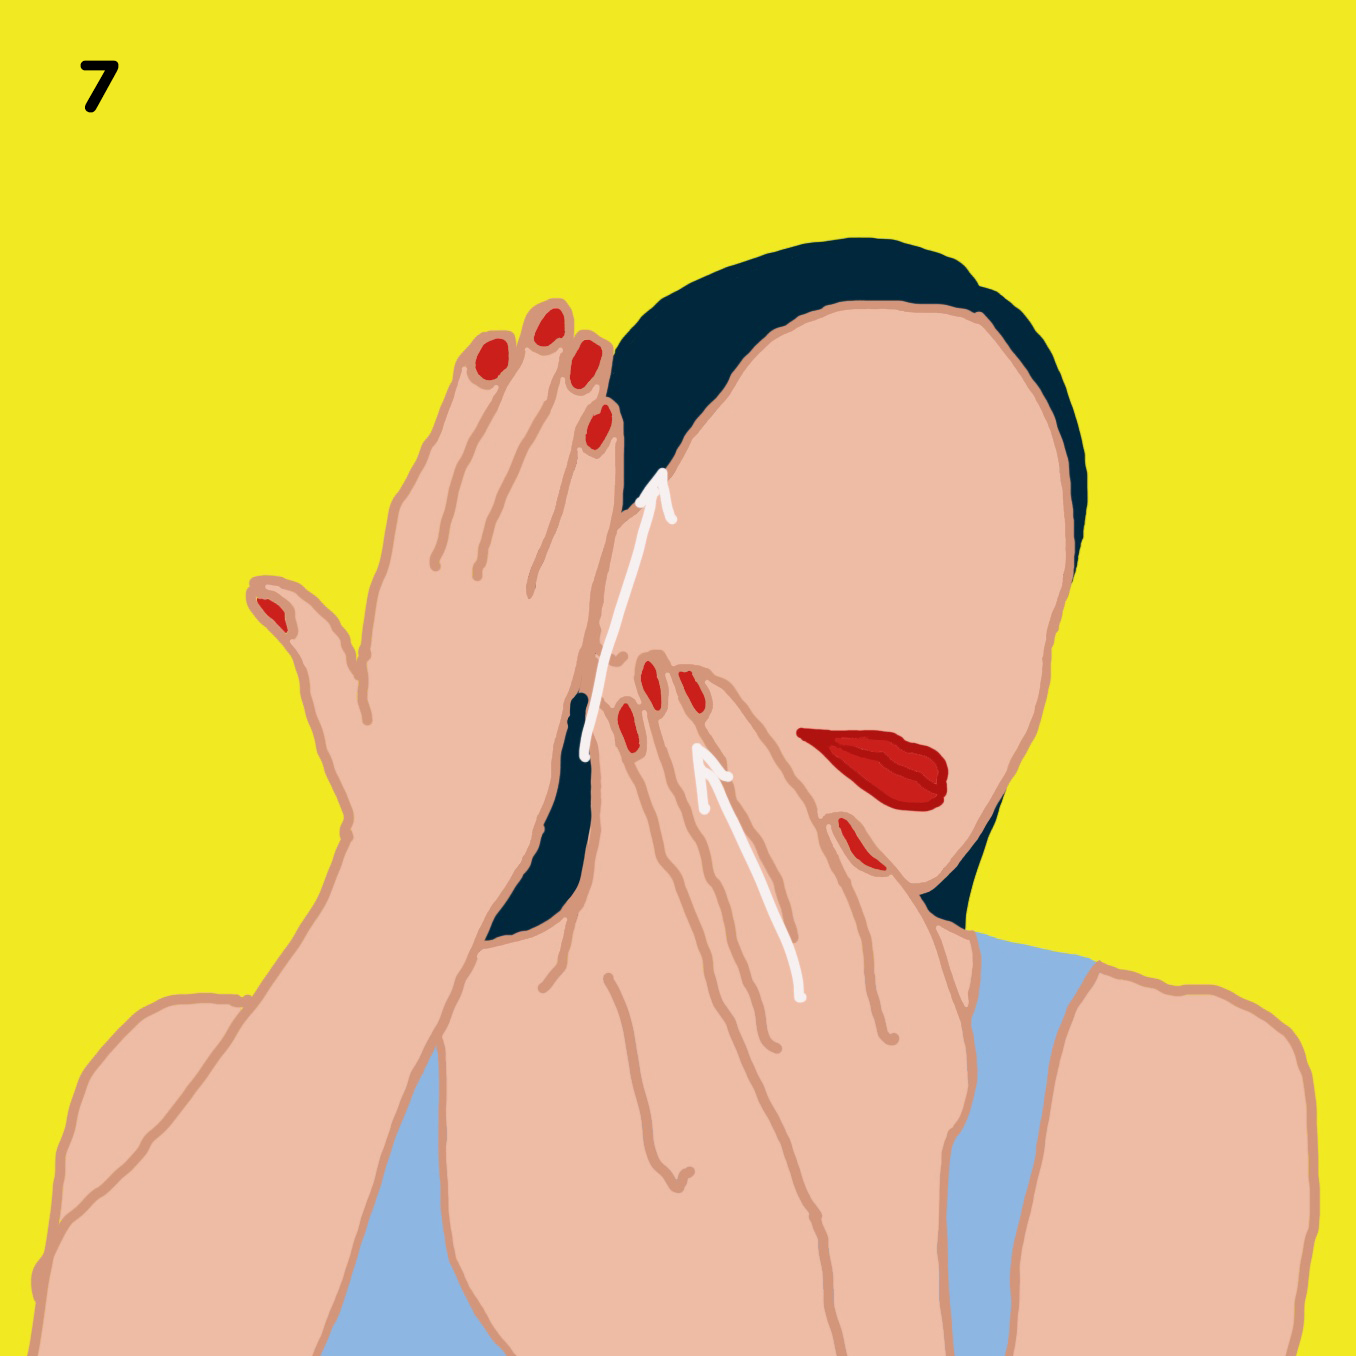 7. YOUR CHEEKS   Using the flat part of your fingers and top of the palm, stroke your cheeks from chin to cheekbone, lifting the side of your cheeks in an upwards manner. Coming from the neck upwards. Repeat this 5 times on each side.